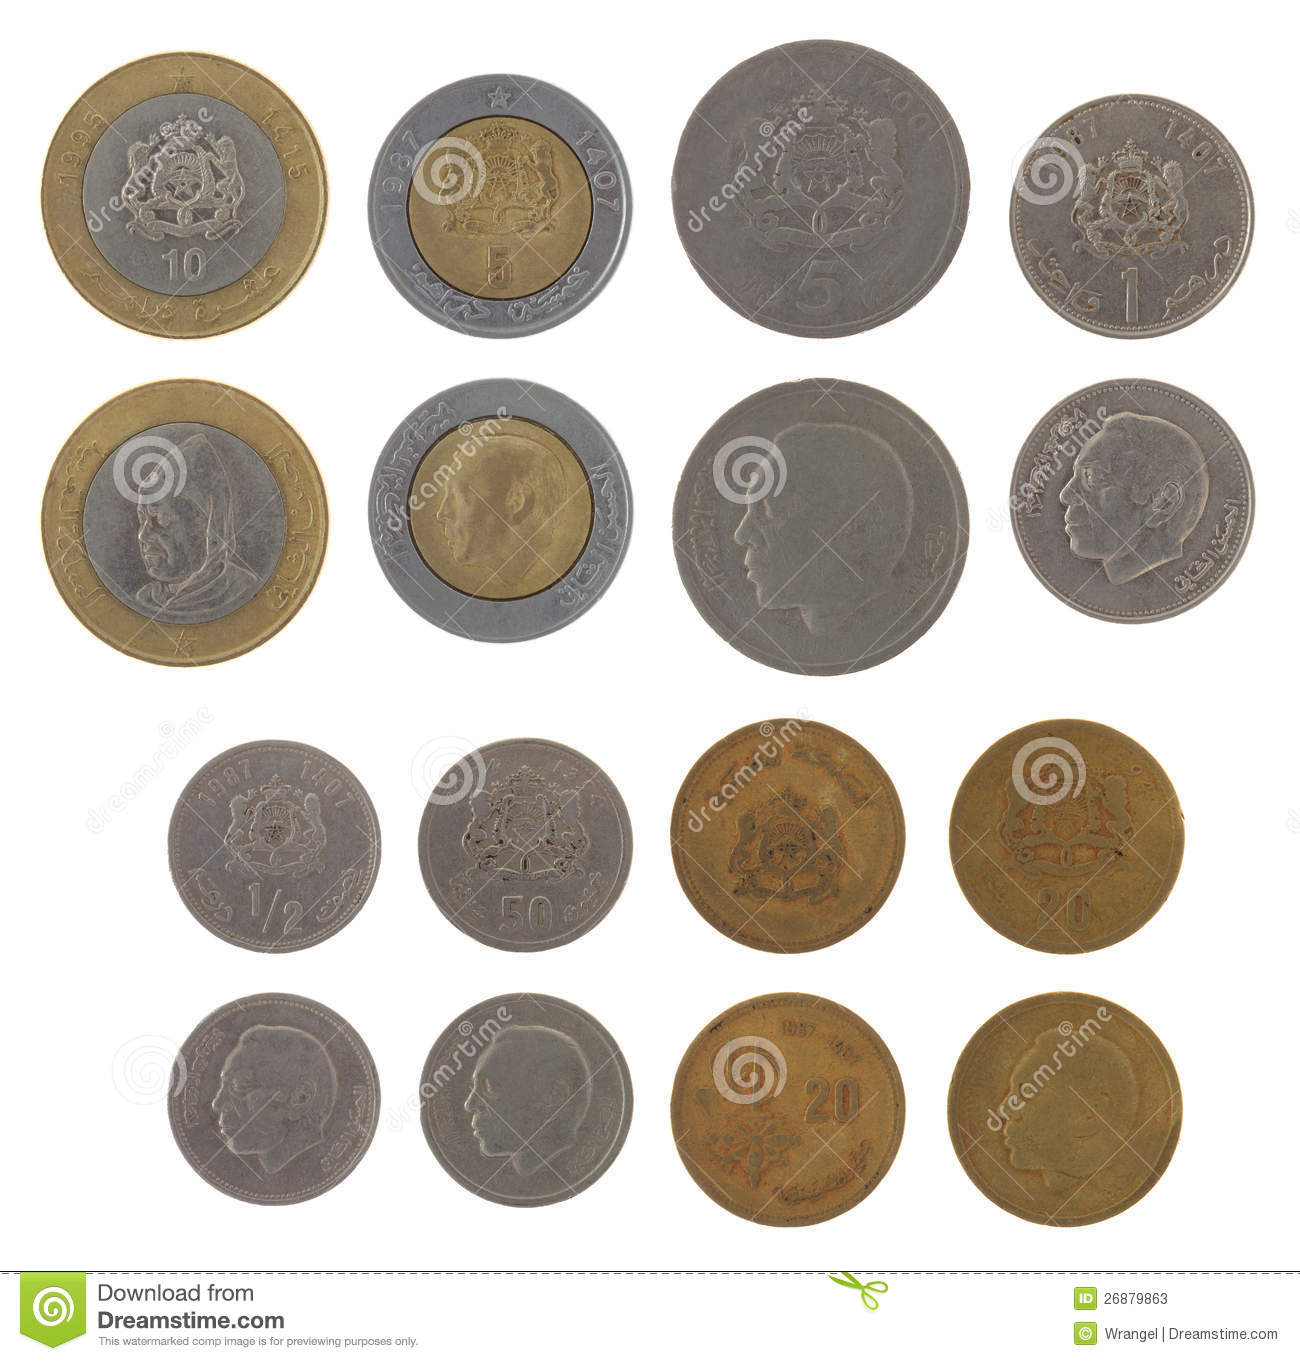 Moroccan Dirham Symbol http://www.dreamstime.com/stock-photos-moroccan-coins-isolated-white-image26879863